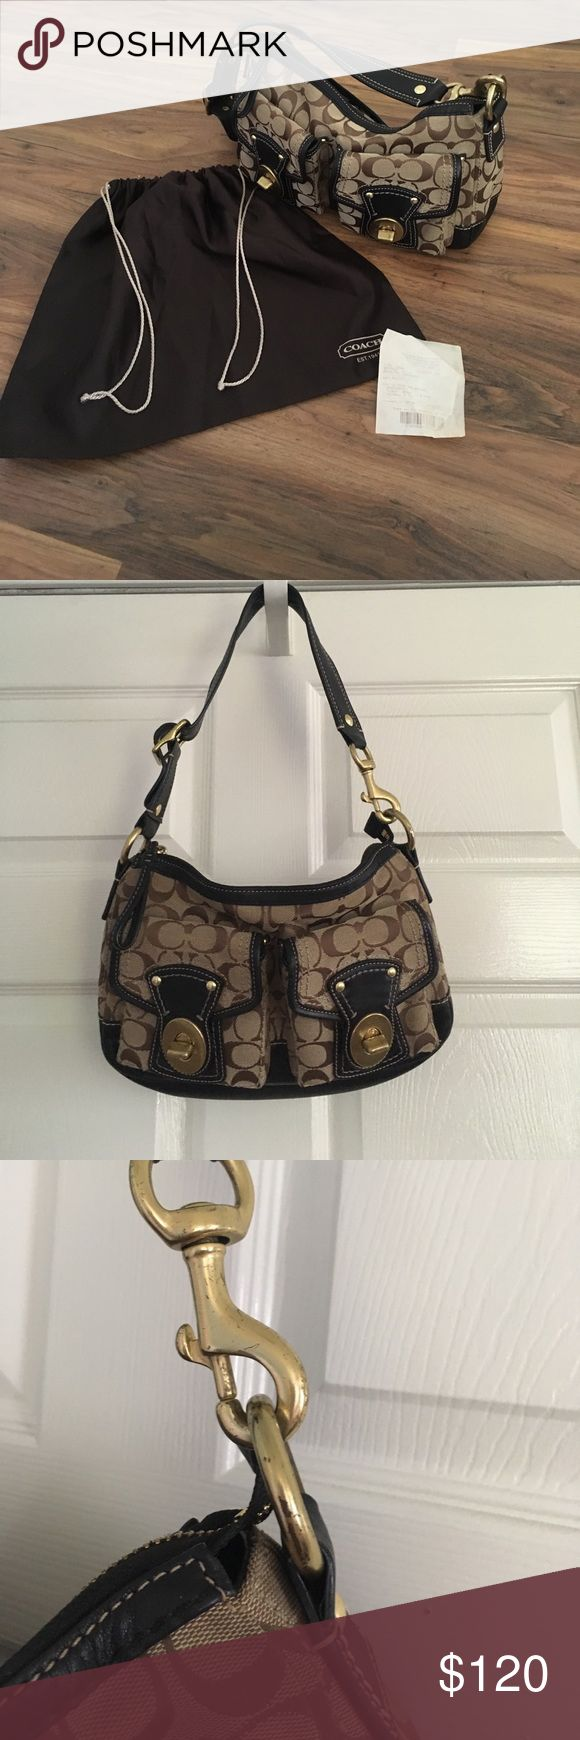 Coach Legacy Signature Small Shoulder Bag Authentic Coach Legacy Shoulder Bag with original dust bag and gift receipt. Great condition! There is some minor tarnishing on the hardware. Has two front pouches for storage, and a back zipper compartment. PRICE IS FIRM. Coach Bags Shoulder Bags